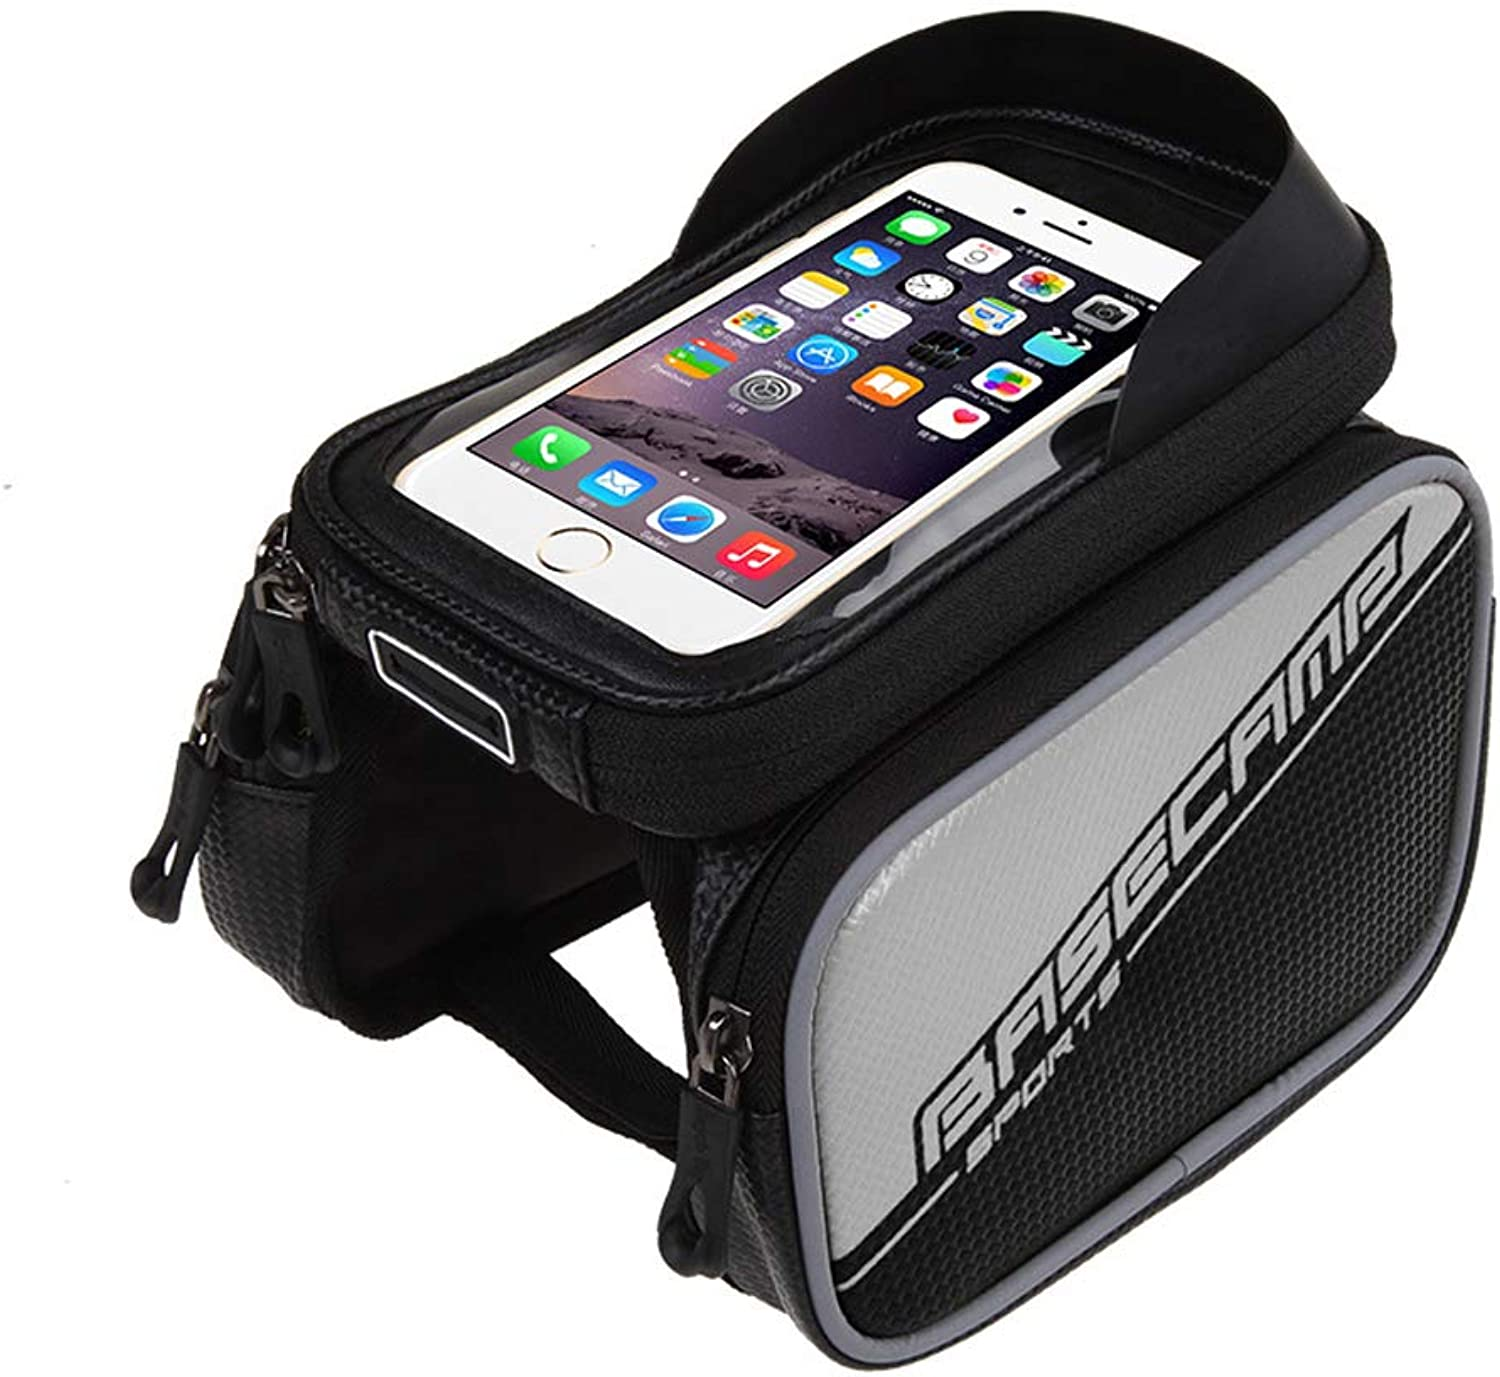 Bicycle Front Tube Bag, Waterproof Bicycle Frame Package Touch Screen Mobile Phone Storage Bag, Suitable for 6 inch